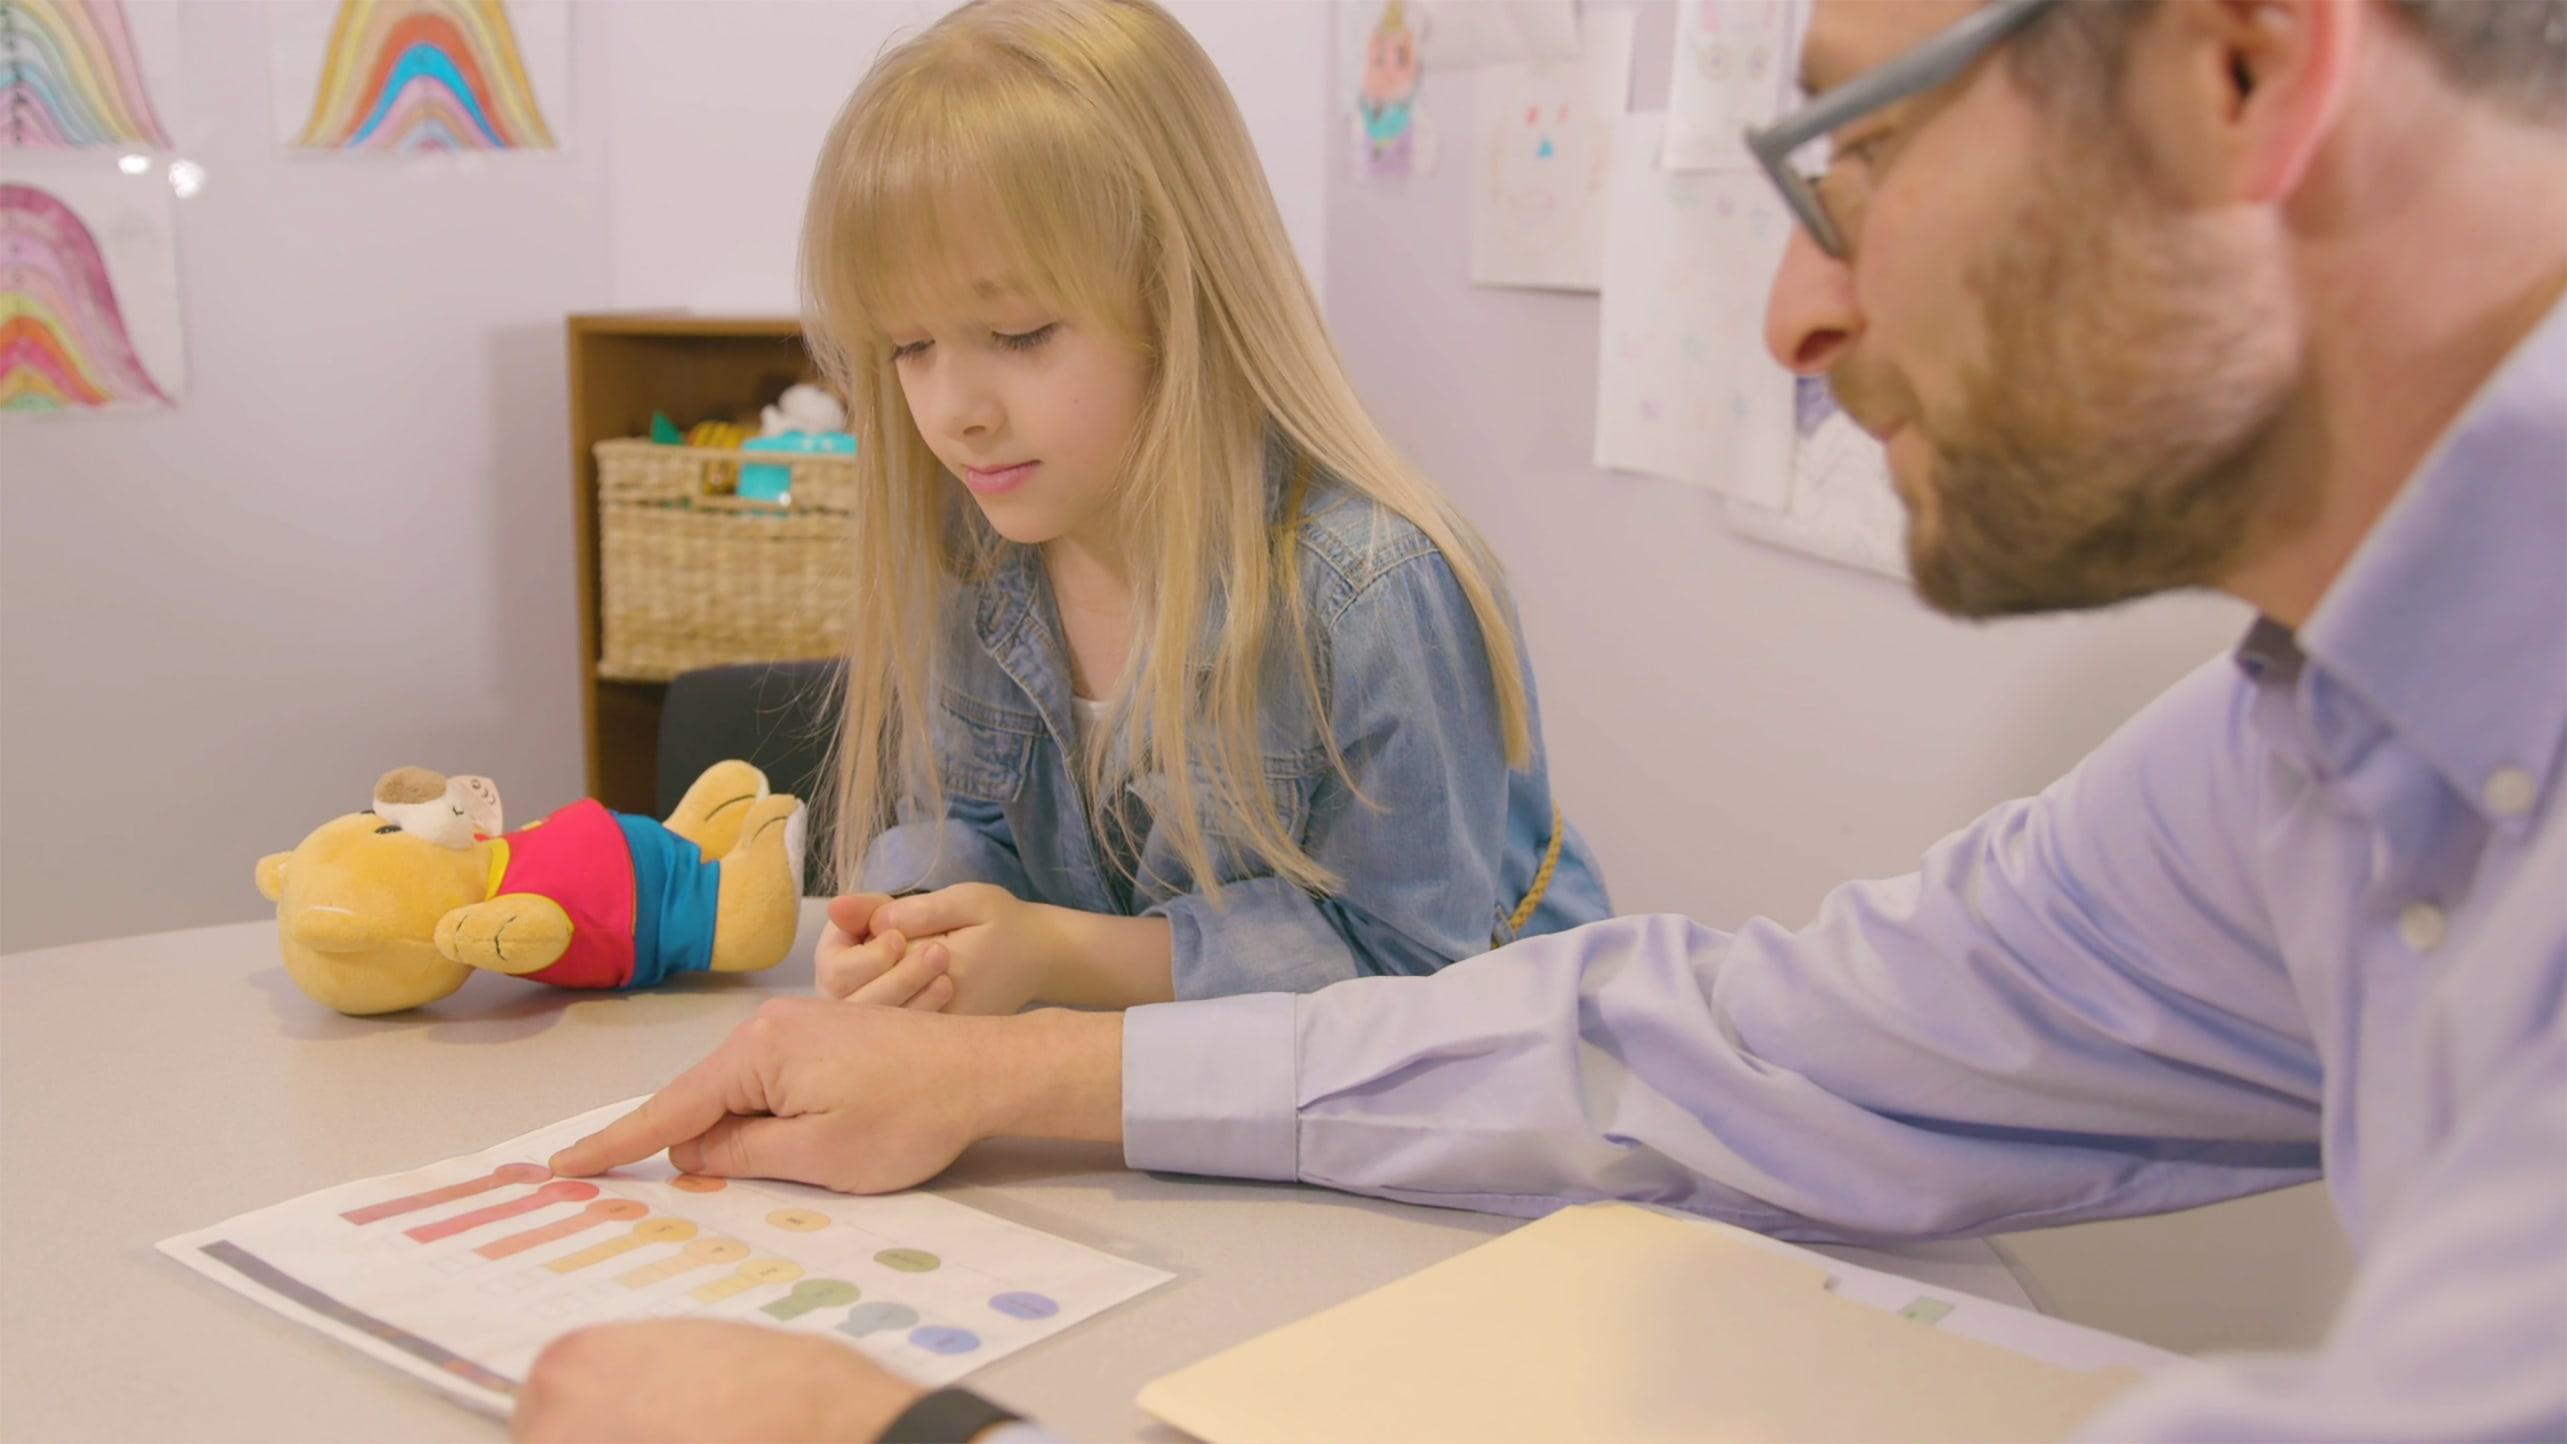 A doctor interacts with a child in a clinic setting.